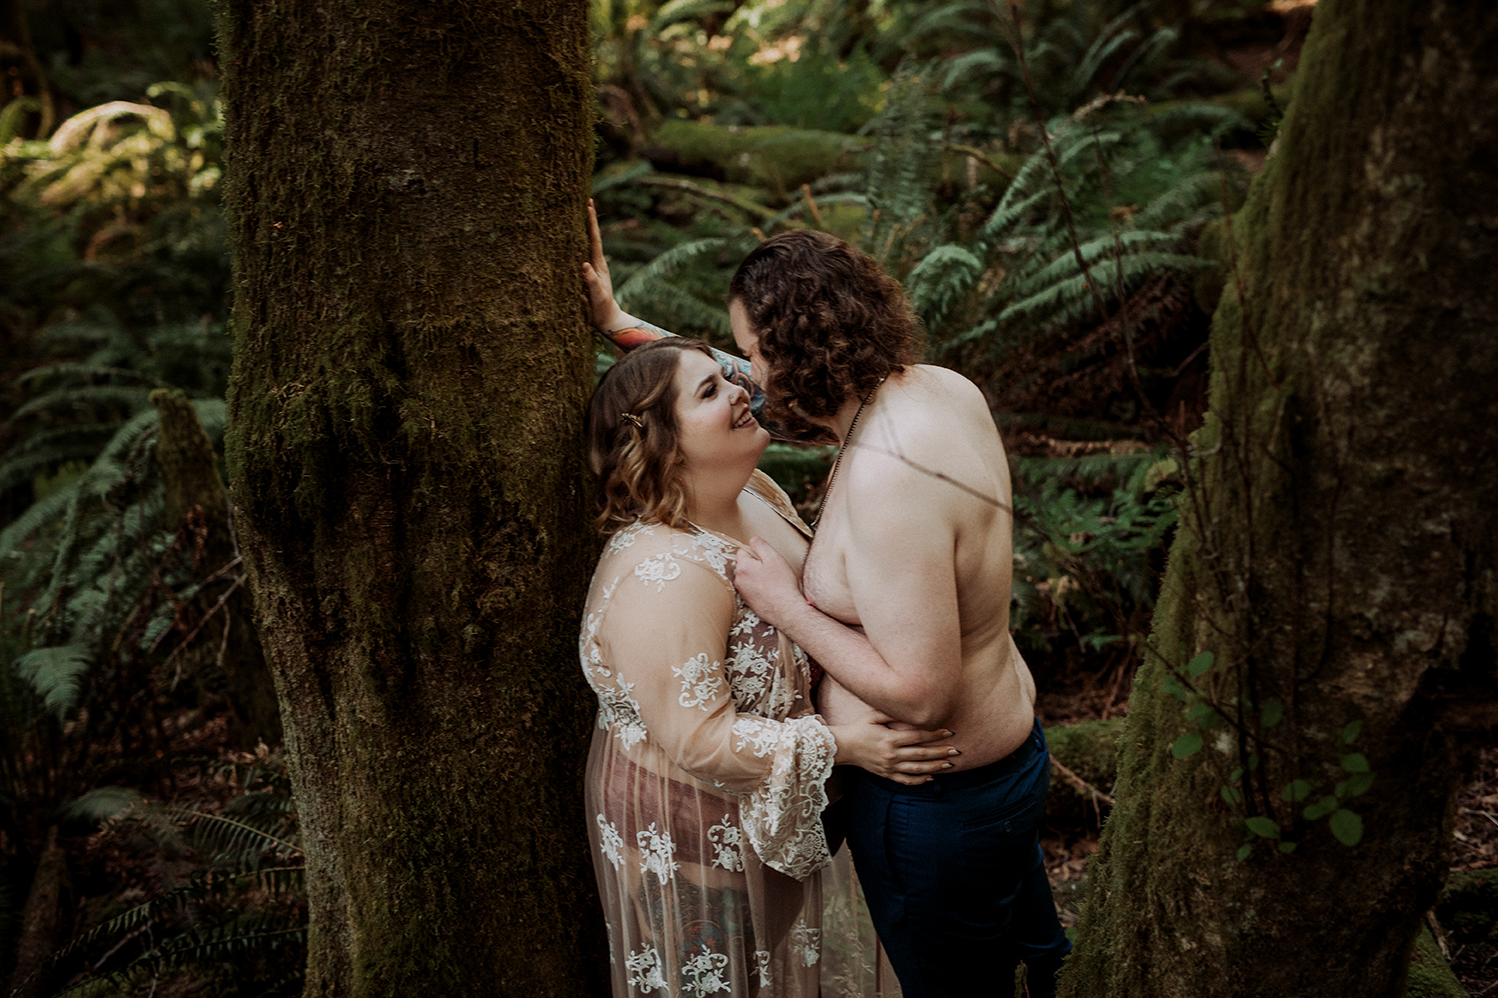 Vancouver-Island-Couples-Boudoir-Moss-Photography-10.jpg